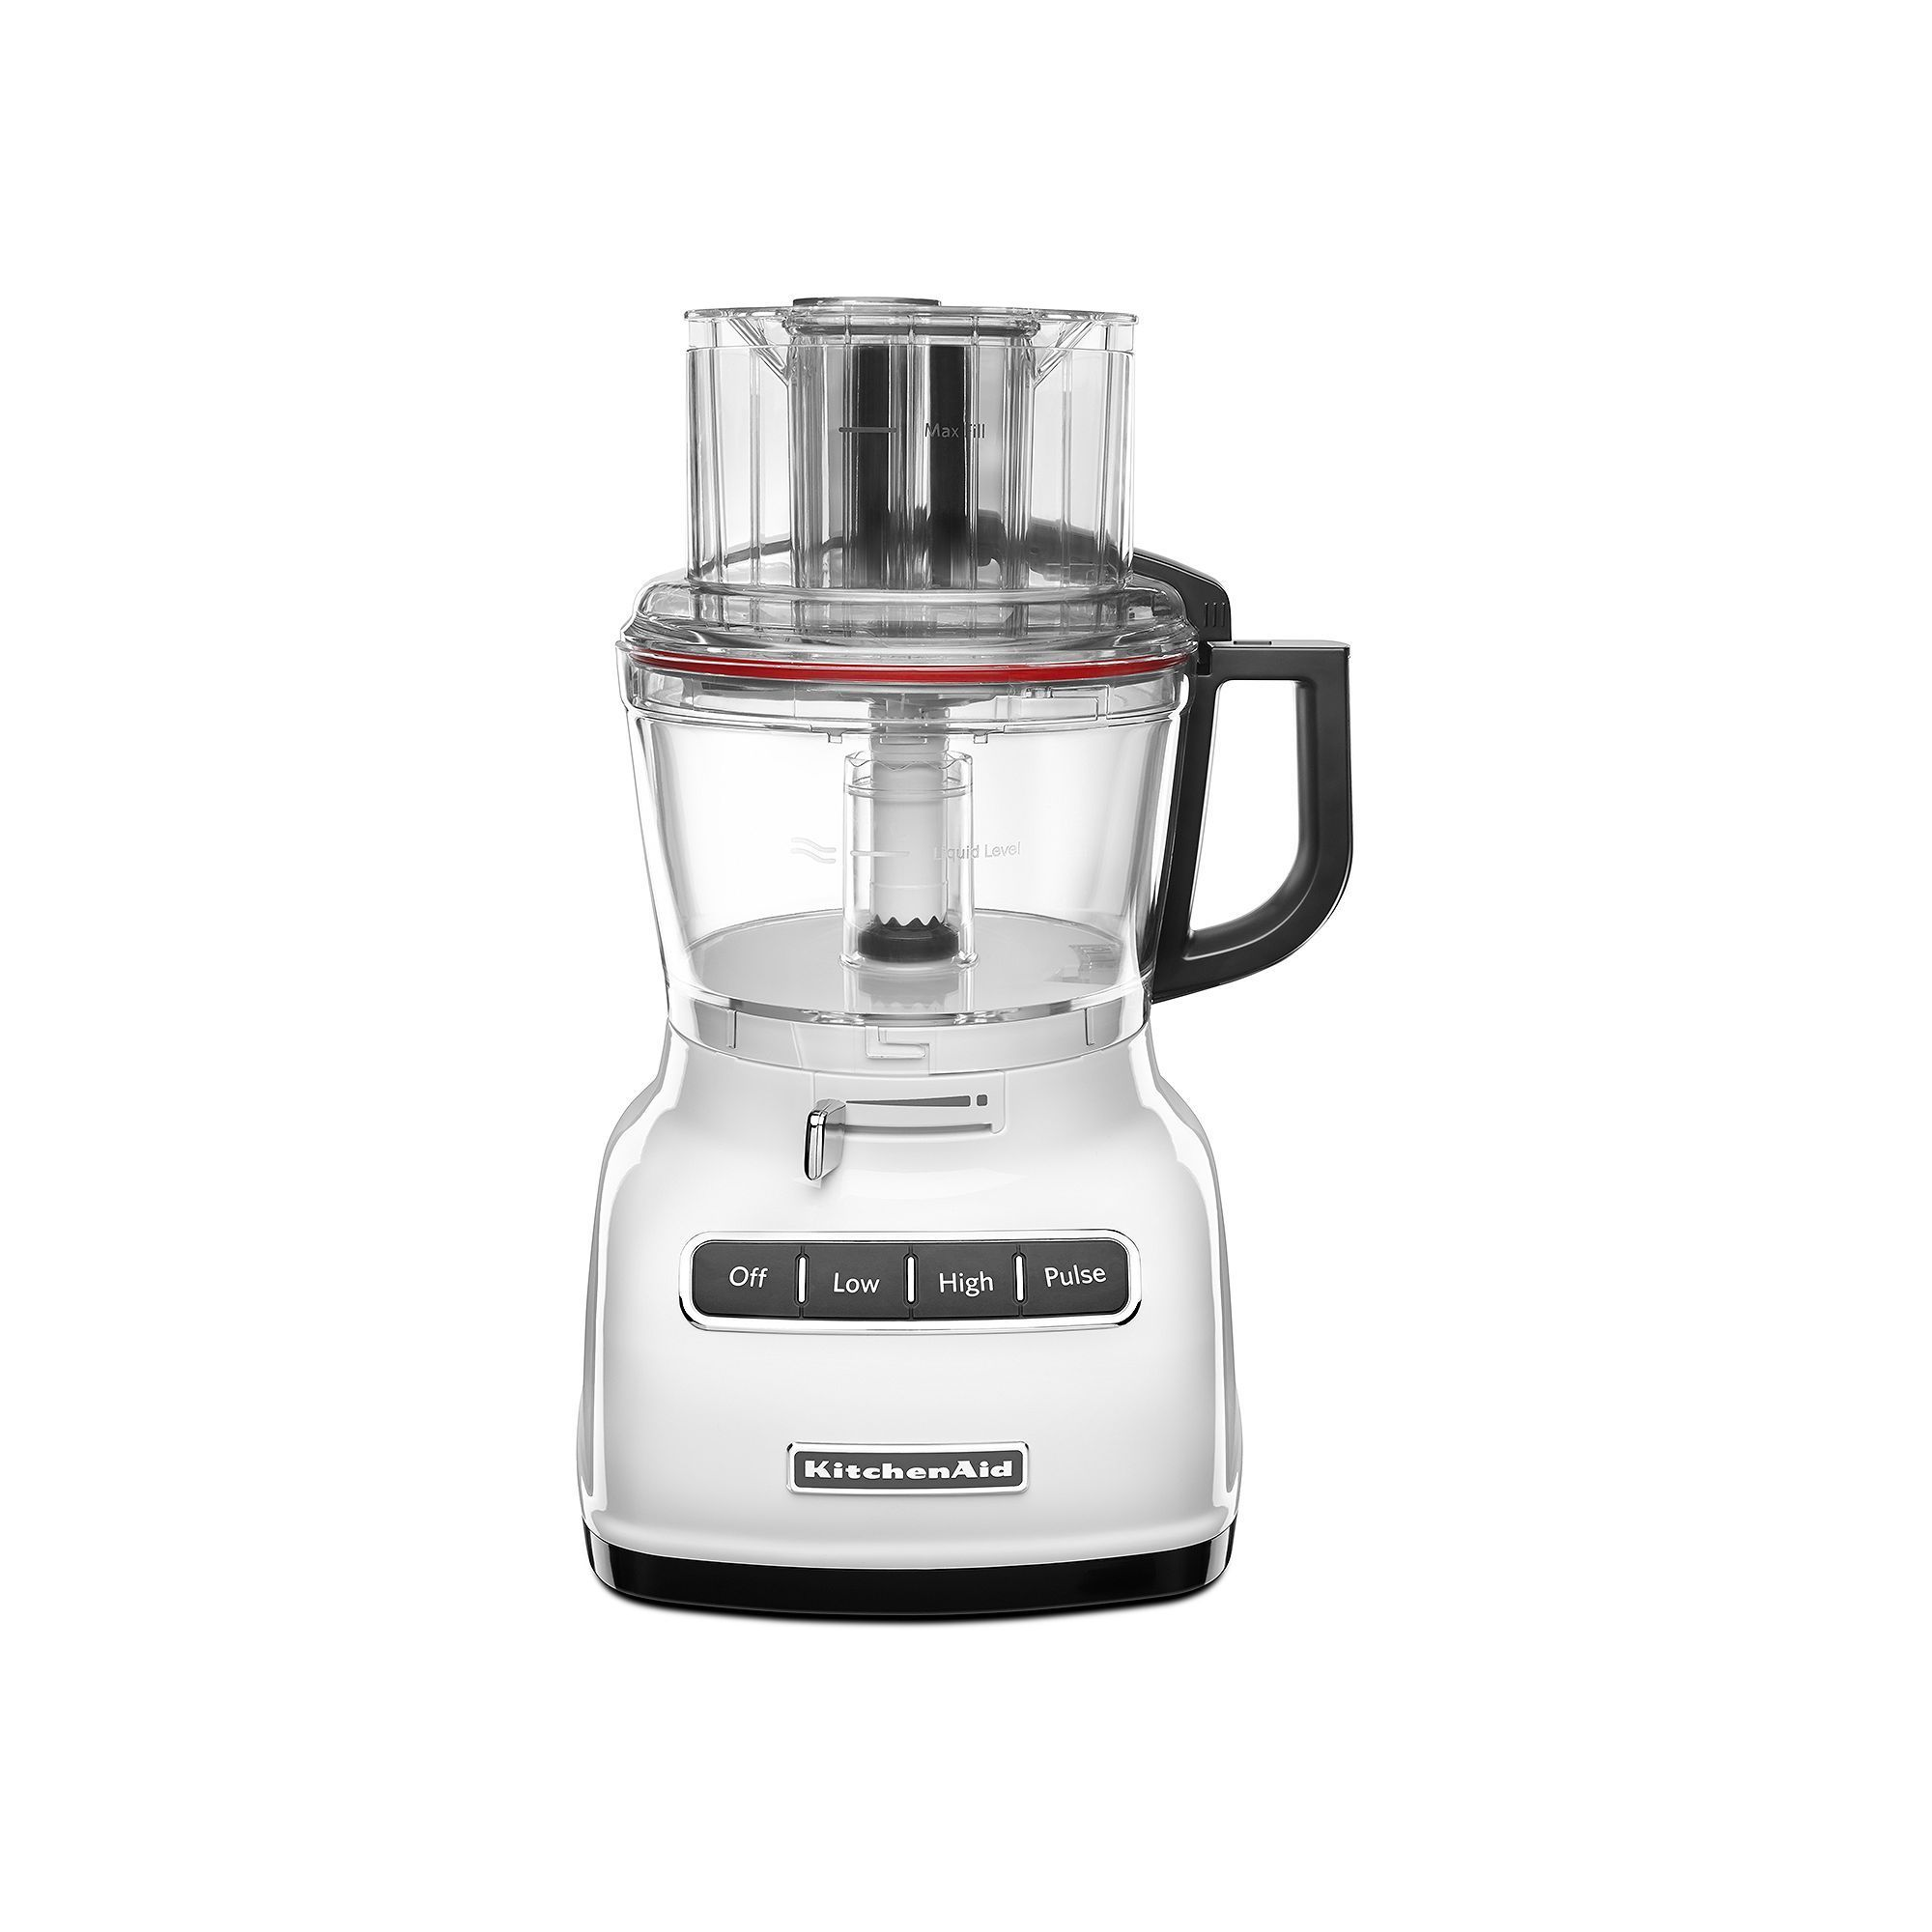 KitchenAid KFP0933 9Cup Food Processor Food processor